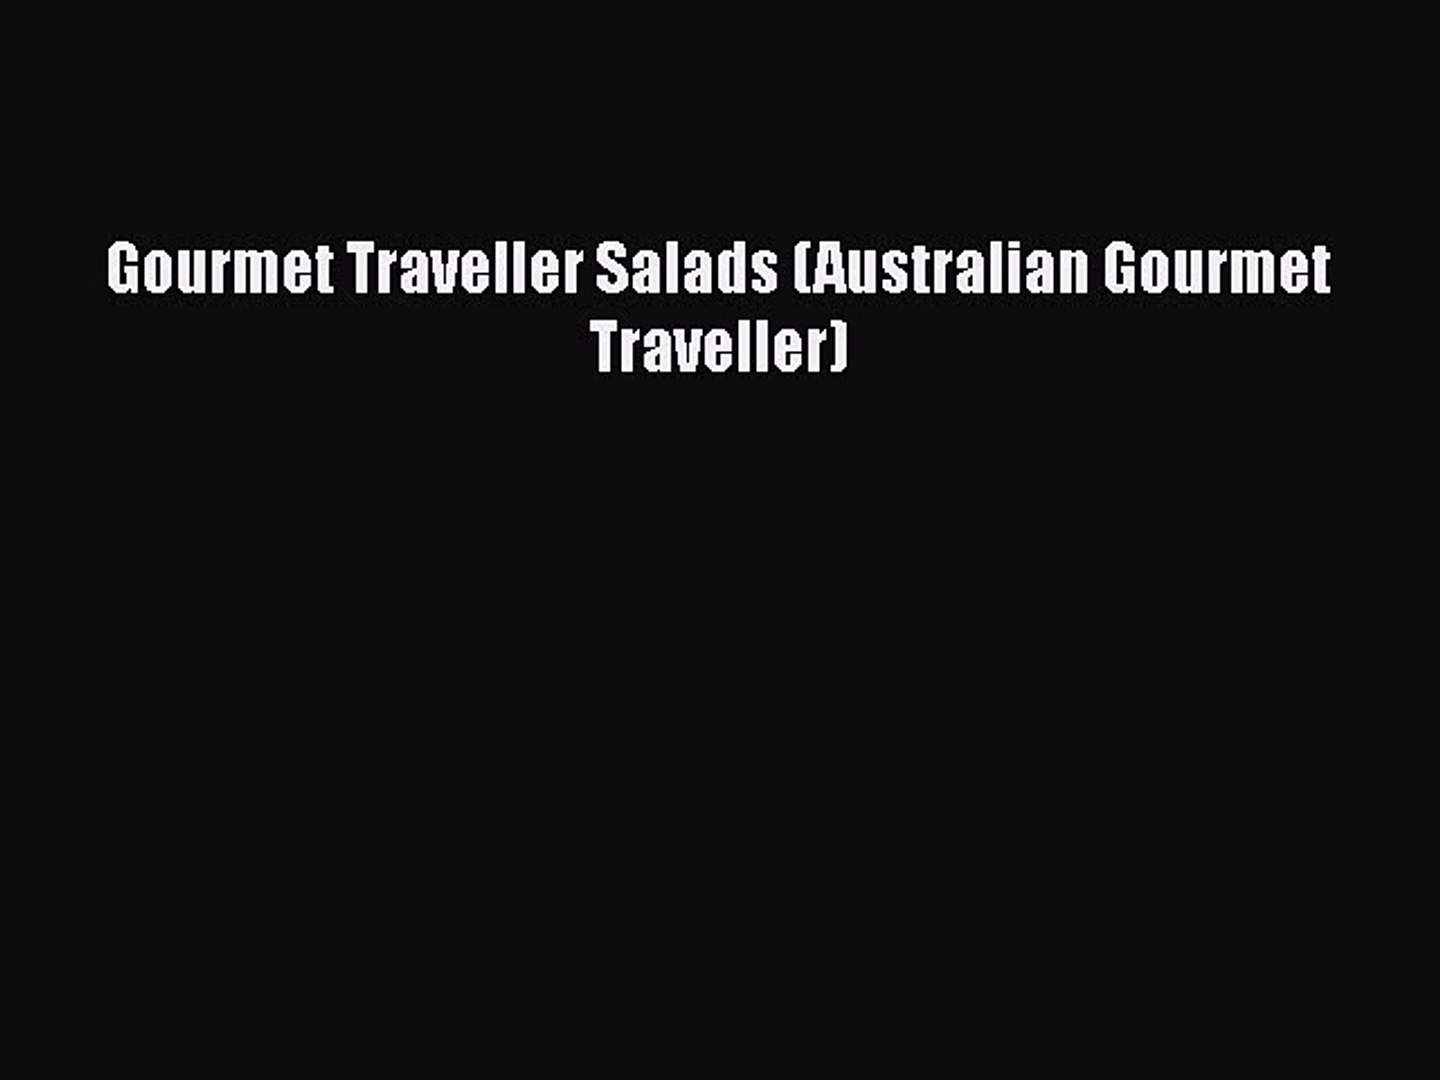 Read Gourmet Traveller Salads (Australian Gourmet Traveller) Ebook Free